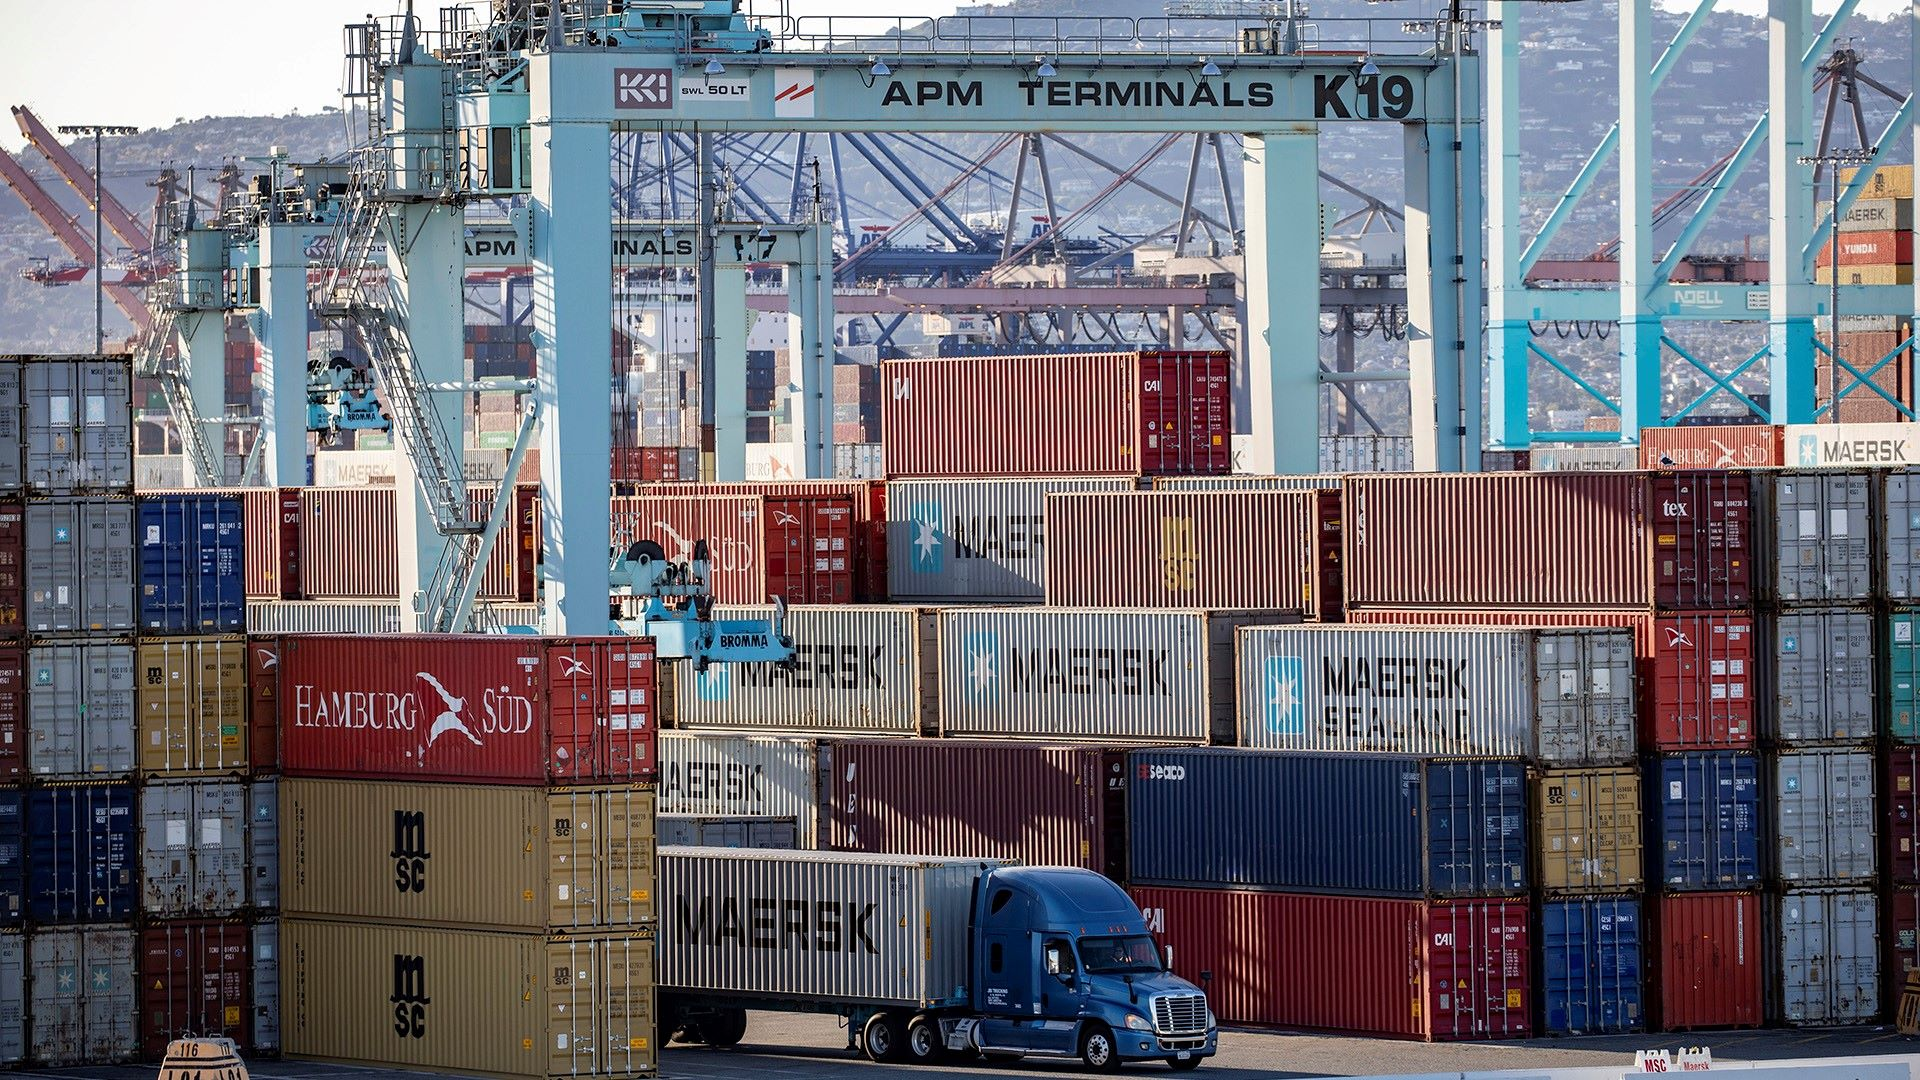 A truck driving through large stacks of containers at a port.